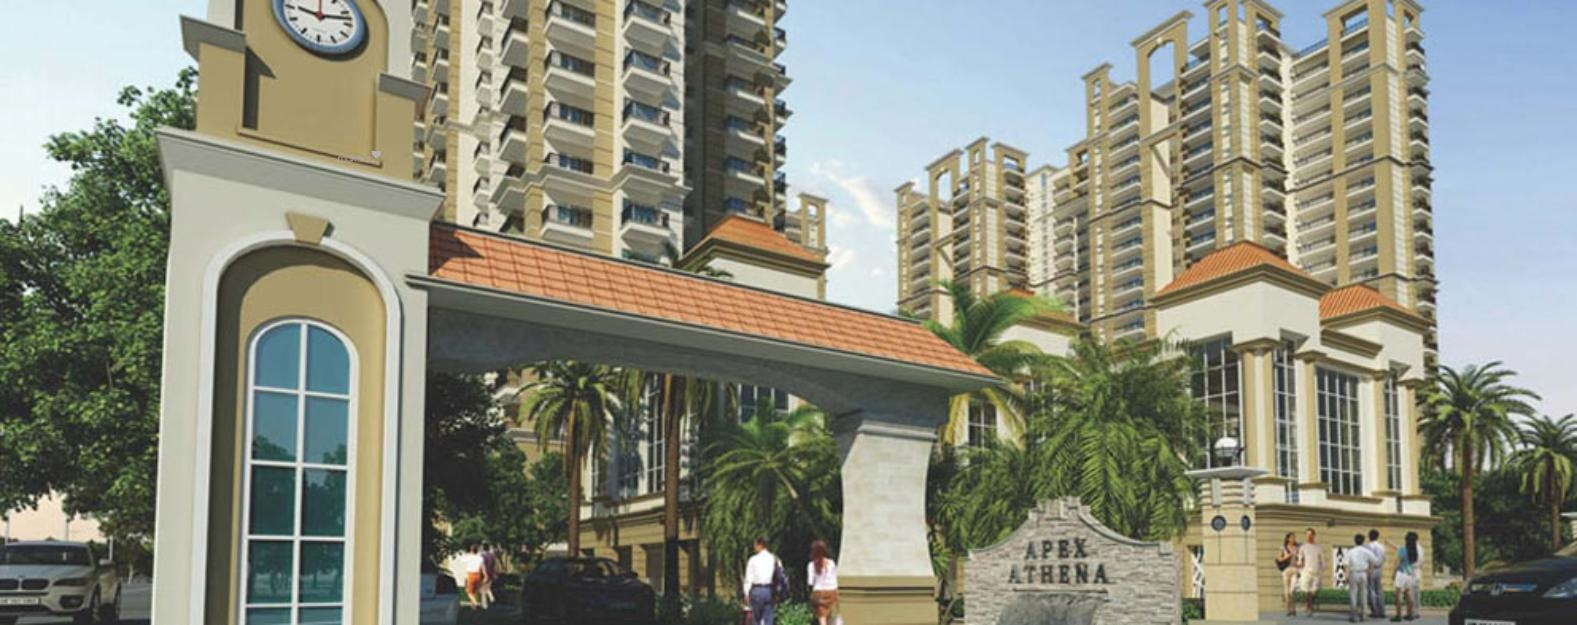 2725 sq ft 4BHK 4BHK+5T (2,725 sq ft) + Study Room Property By Ajmani Estates In Athena, Sector 75